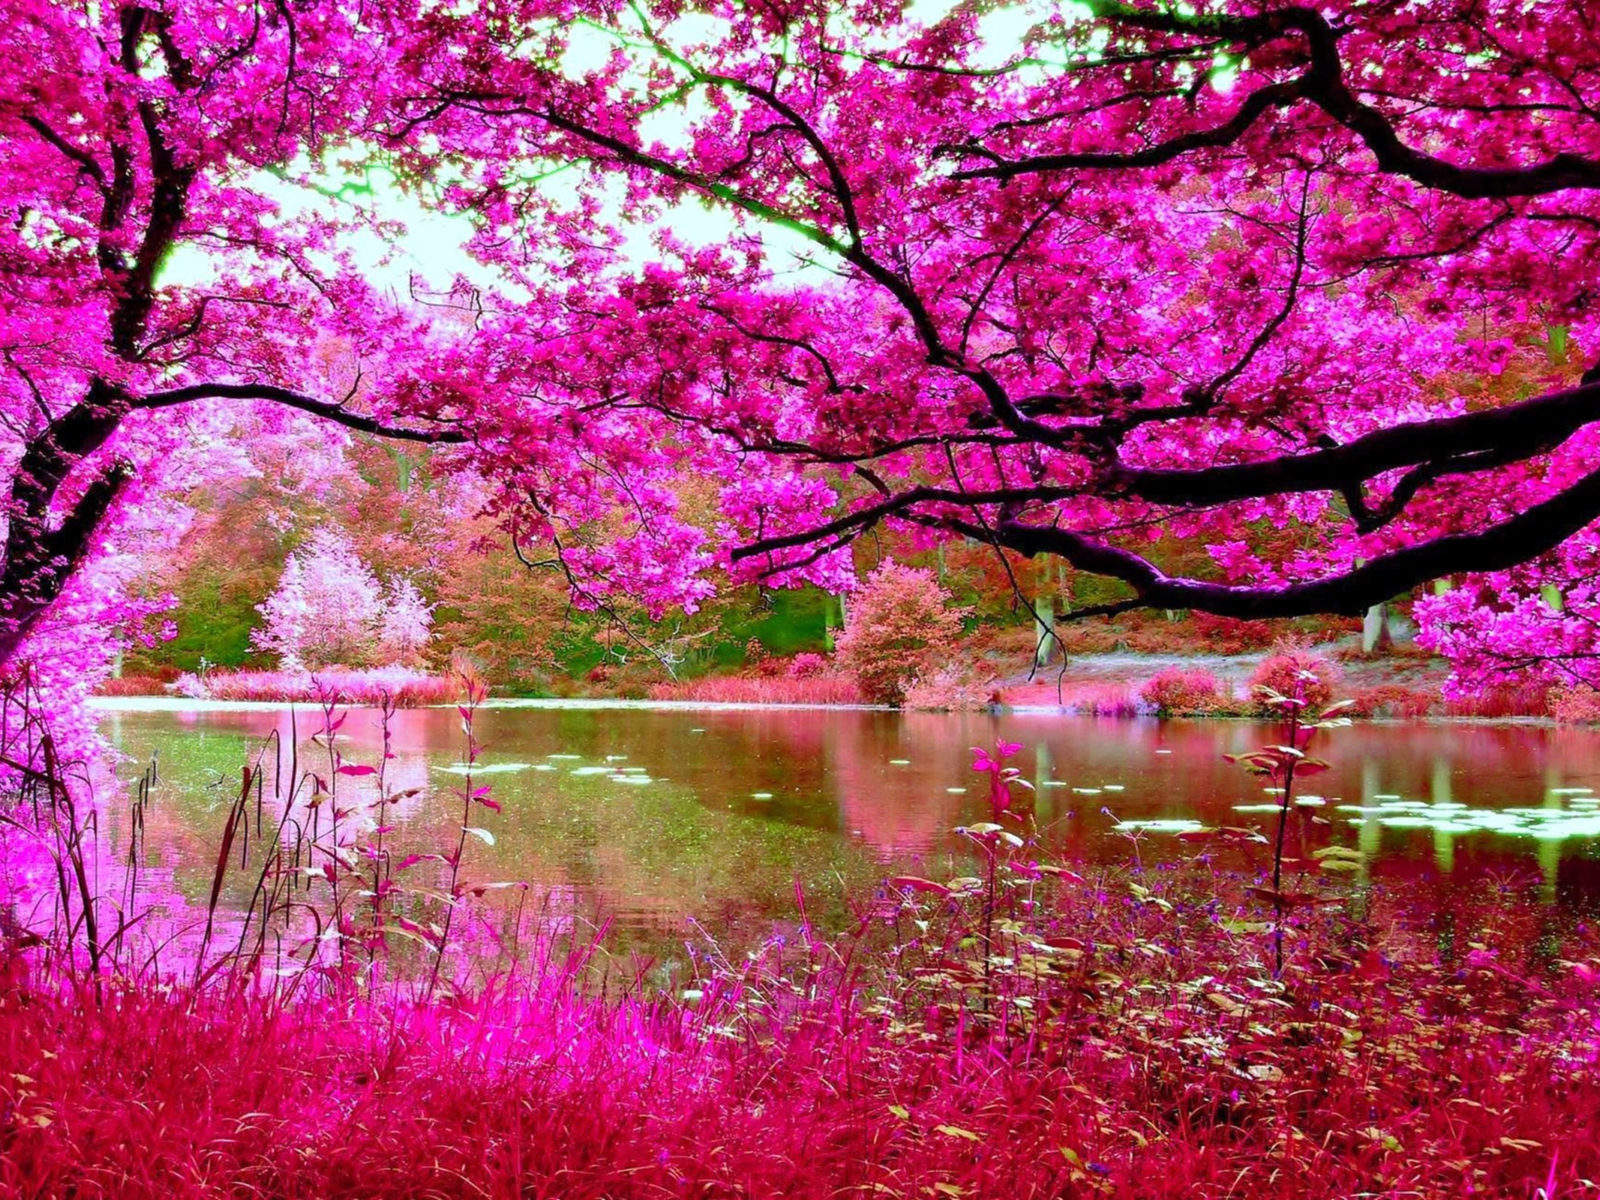 Christmas Wallpaper Animals Cherry Blossoms Spring Pink Cherry Tree River Nature Hd